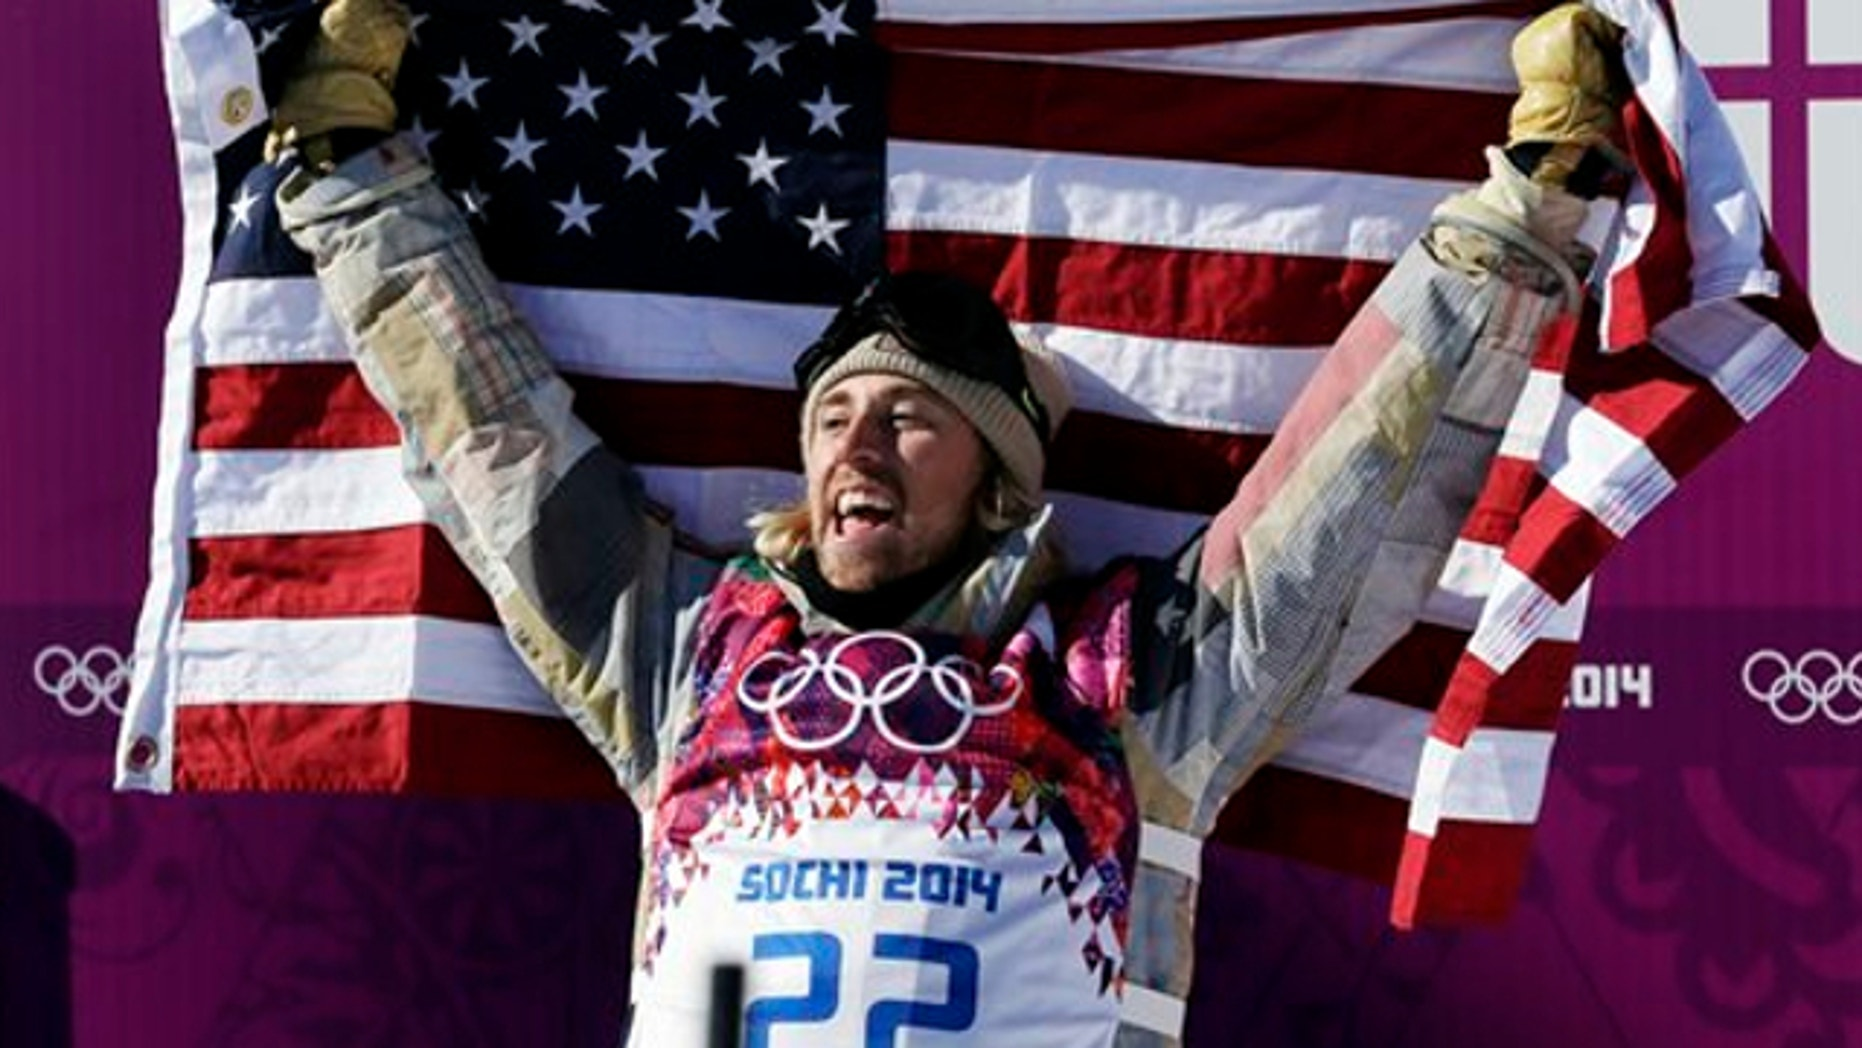 Feb. 8, 2014: United States' Sage Kotsenburg celebrates after winning the men's snowboard slopestyle final at the Rosa Khutor Extreme Park, at the 2014 Winter Olympics, in Krasnaya Polyana, Russia.